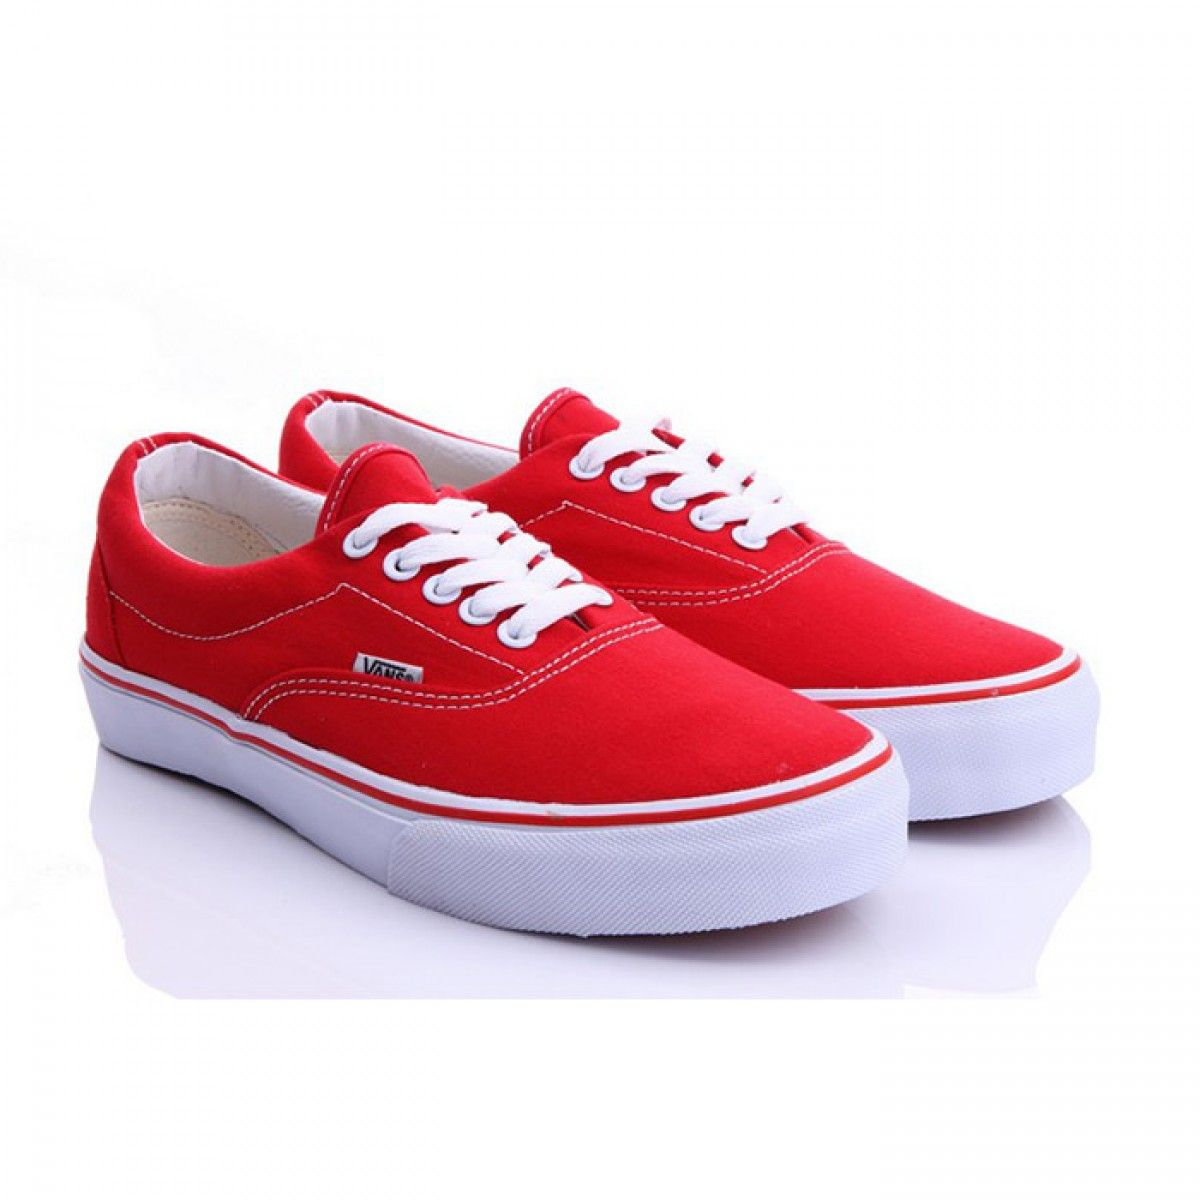 b3d5f9a793 Vans Shoes Red Classic Era Shoes Unisex Classic Canvas